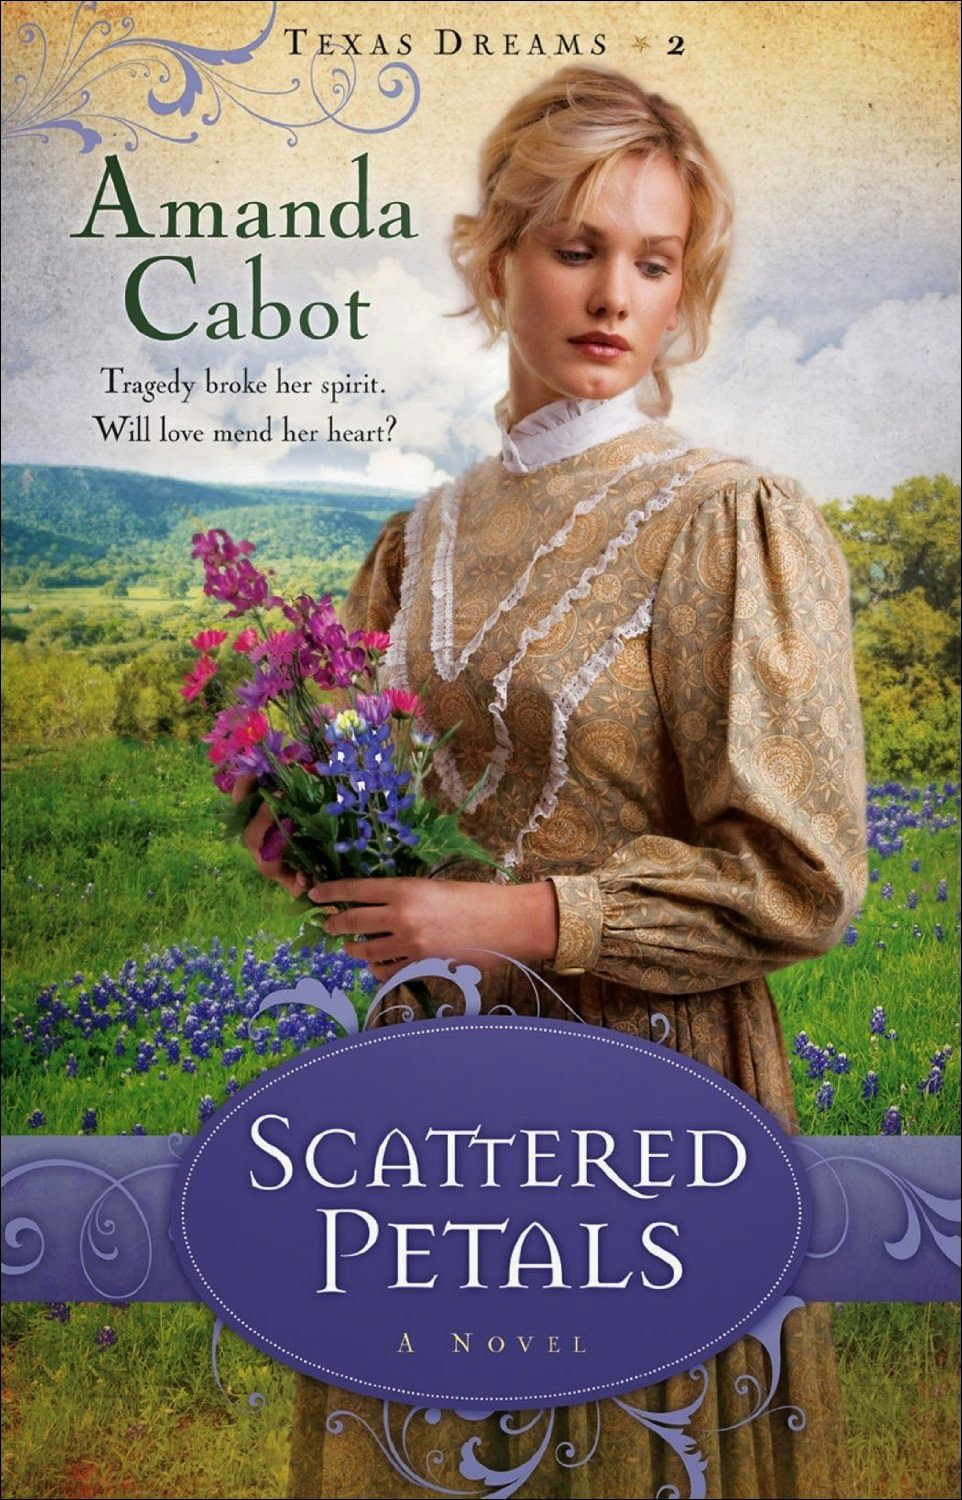 Scattered Petals  by Amanda Cabot  http://www.faithfulreads.com/2015/01/tuesdays-christian-kindle-books-early_20.html